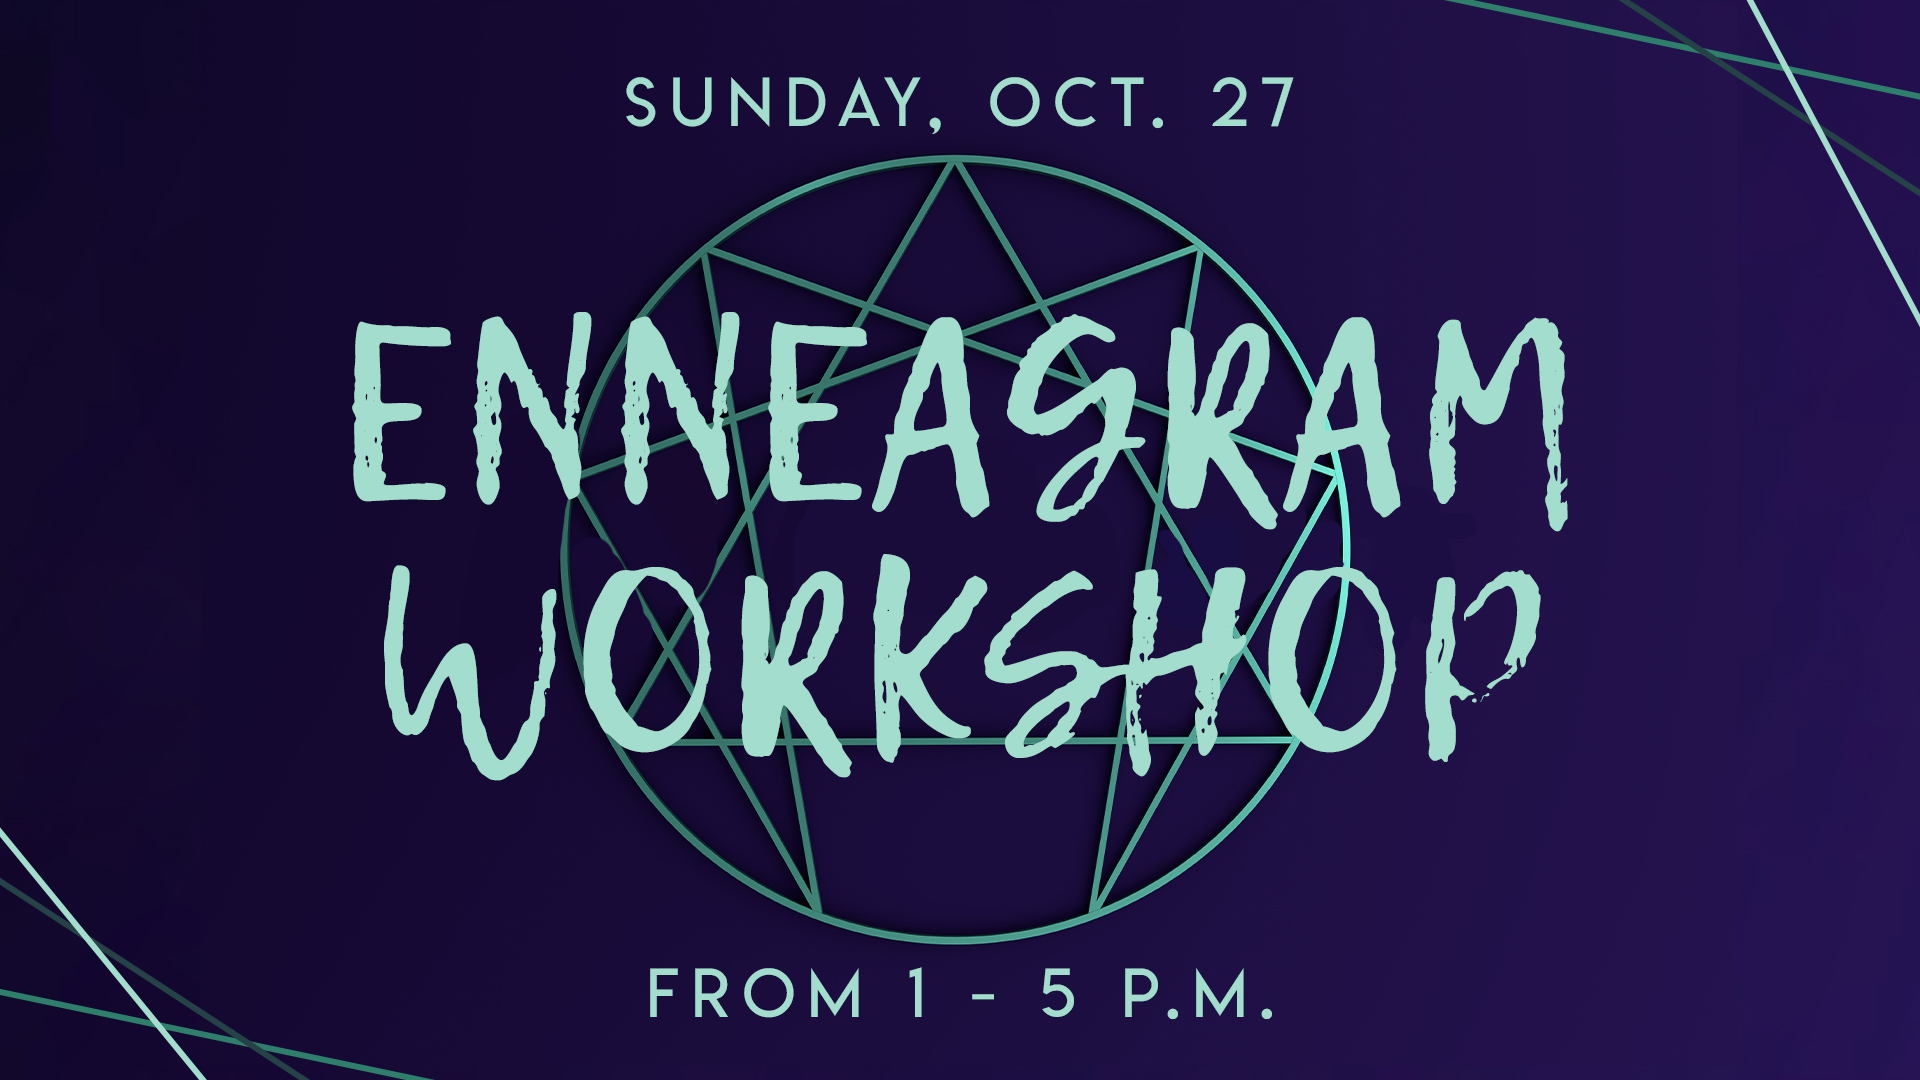 Enneagram Workshop Grapic.jpg